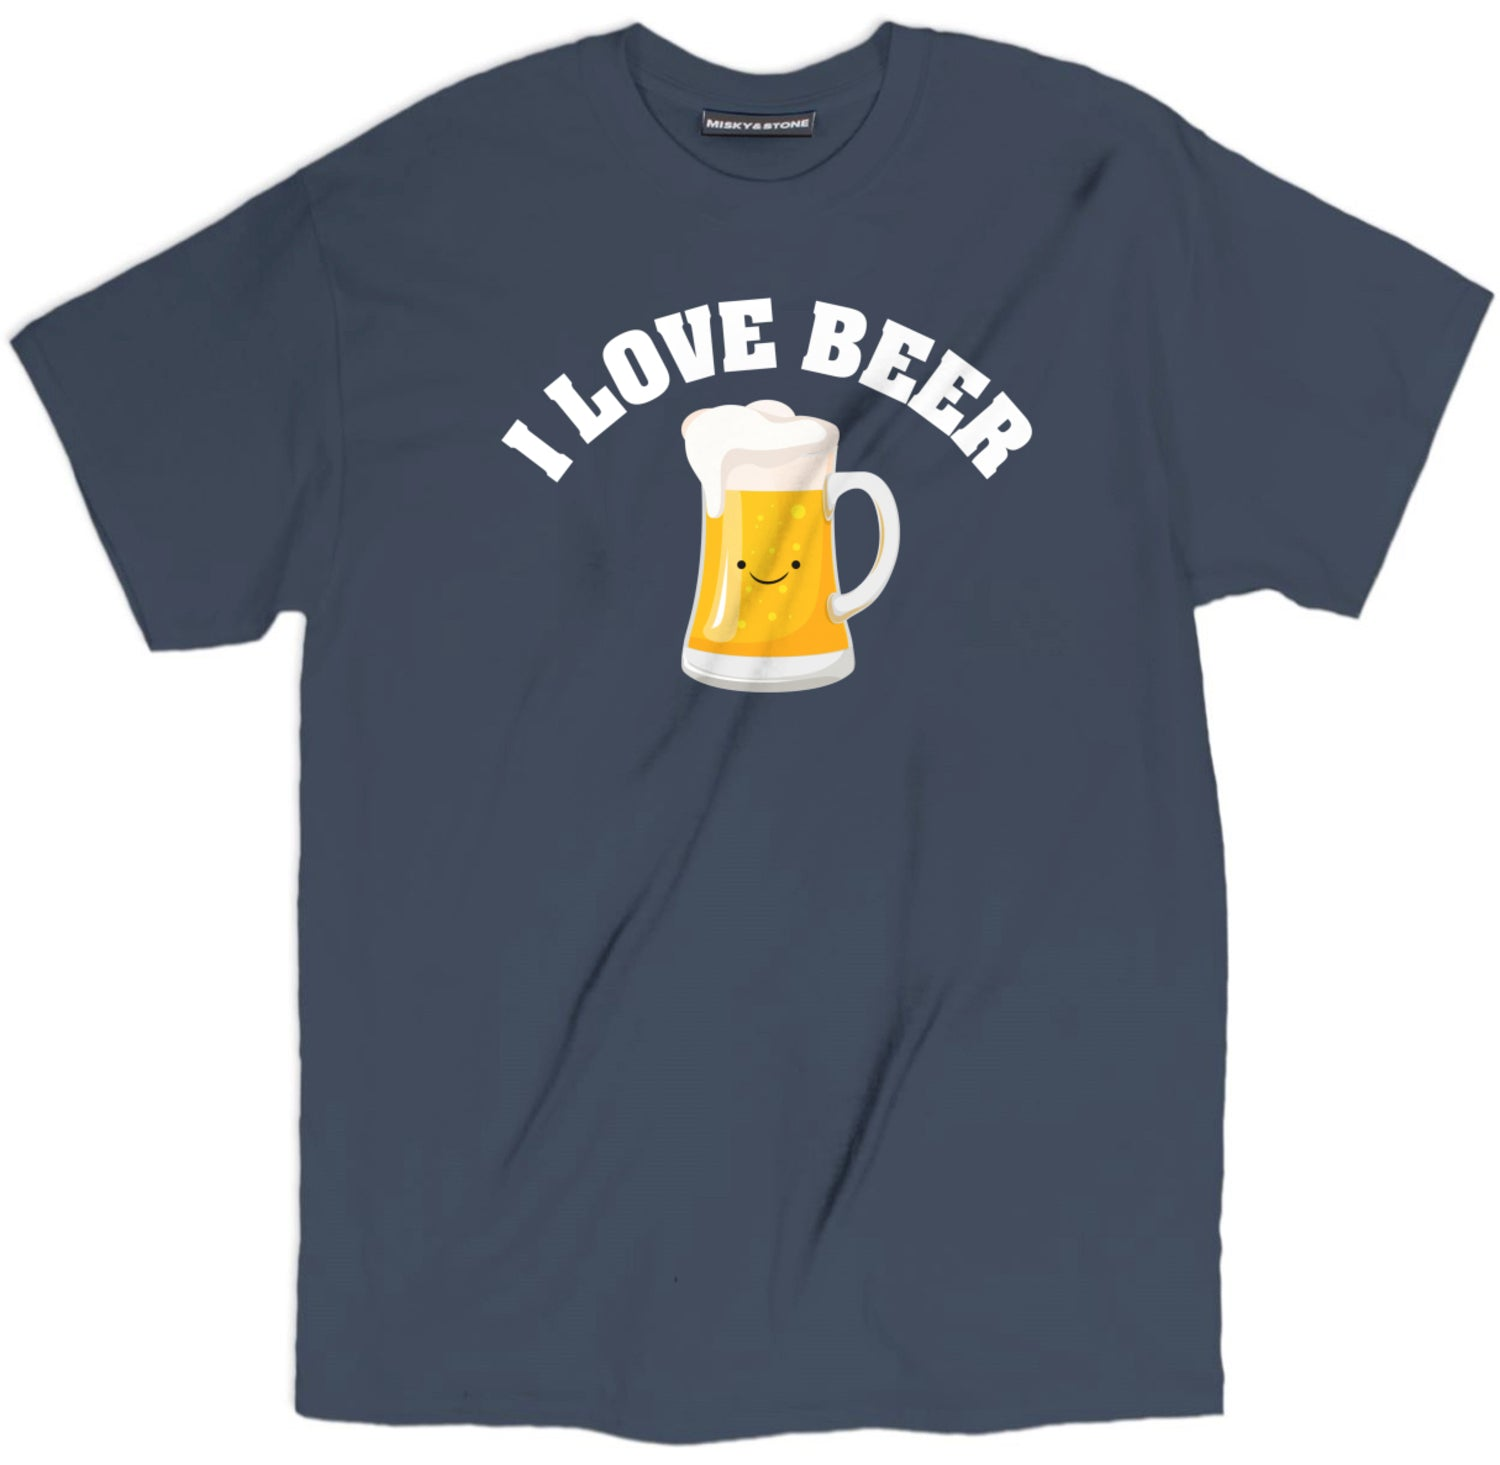 beer shirts, funny beer shirts, beer tees, beer tee shirts, funny beer t shirts, drinking shirts, alcohol shirts, funny drinking shirts, brewery t shirts, craft beer shirts, craft beer t shirts, heineken t shirt, vintage beer shirts,